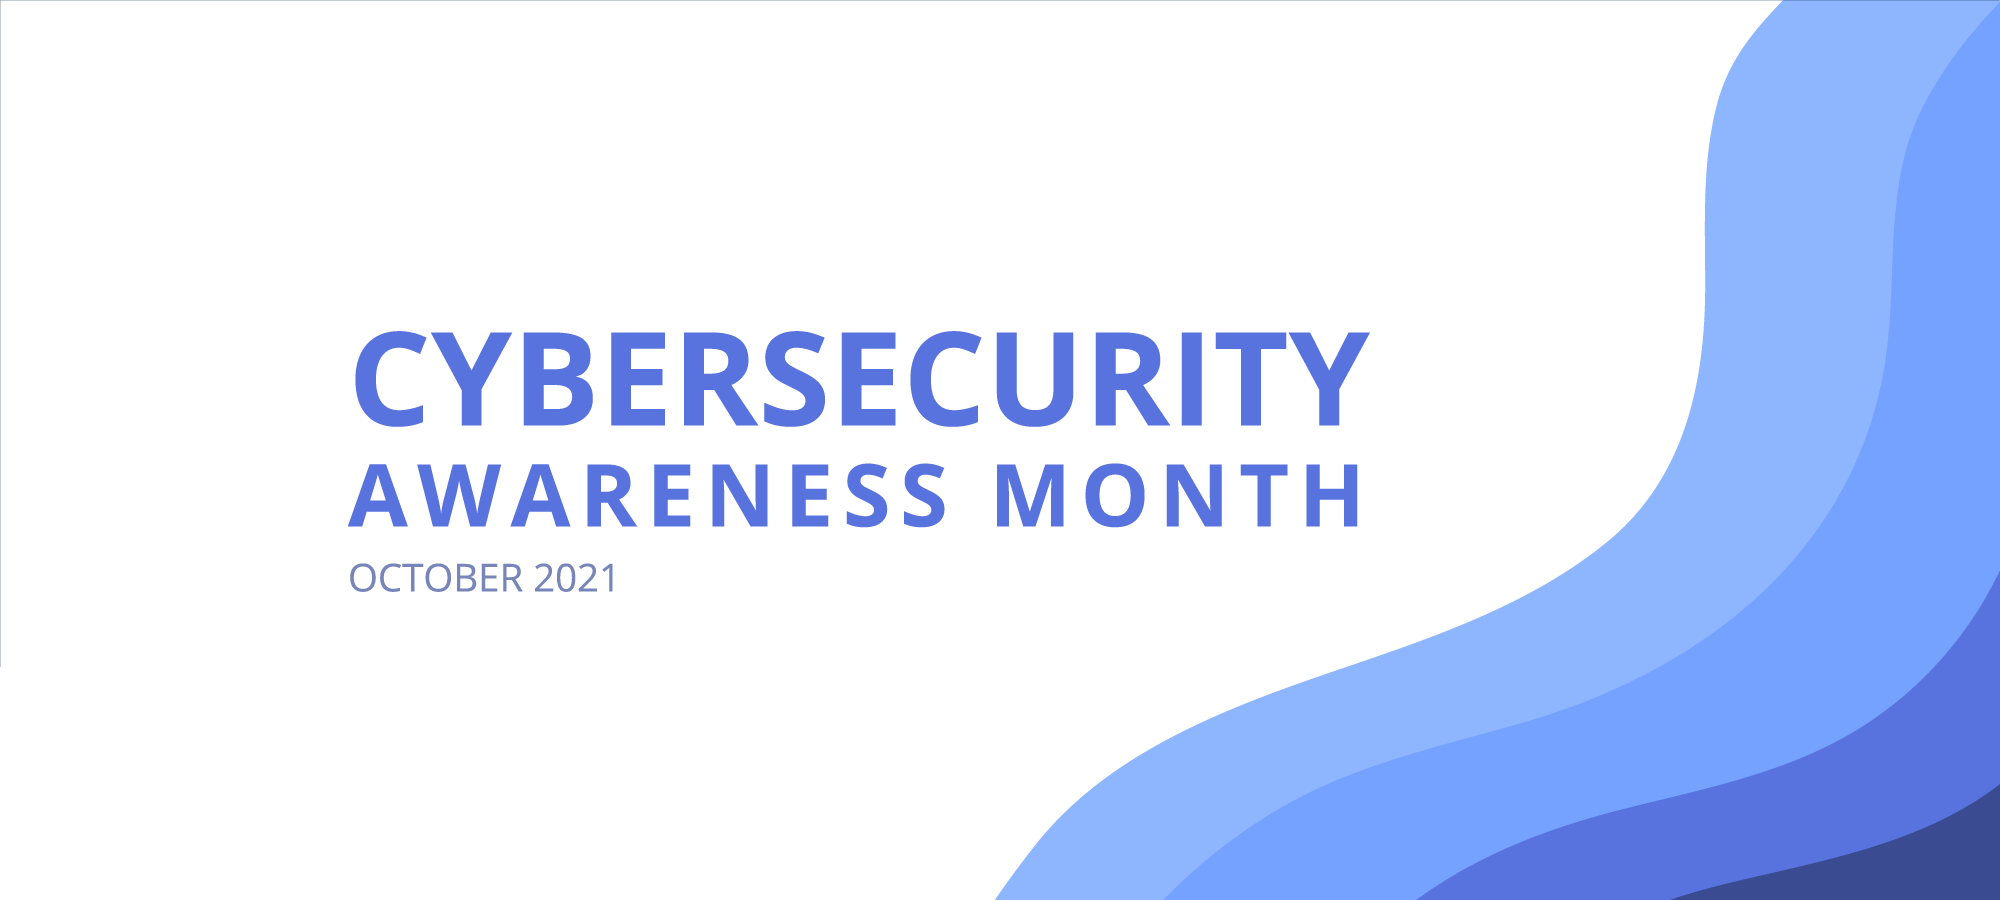 why cybersecurity is important for business